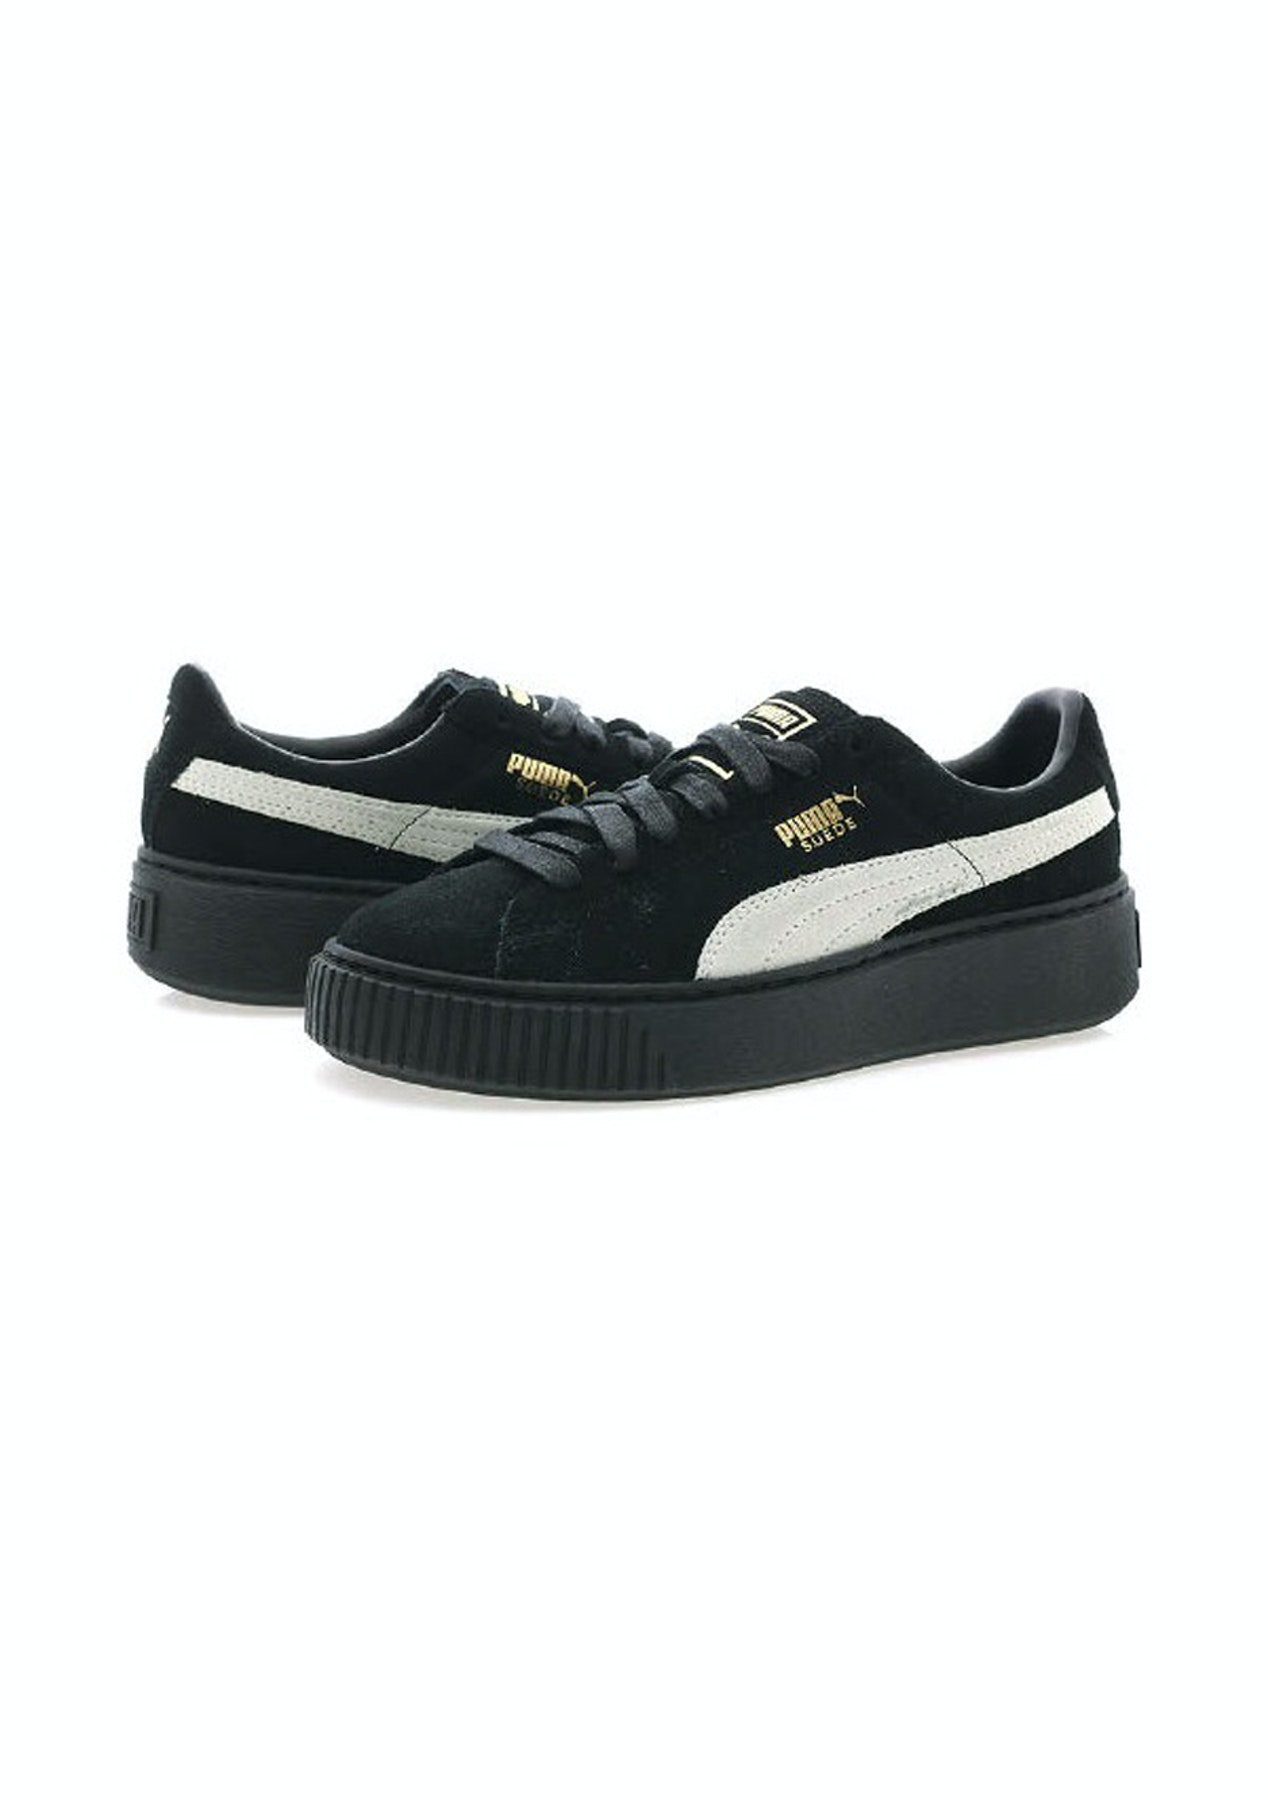 hot sale online e2007 6c5d3 Puma Womens - Suede Platform Fl - Black/White/Gold